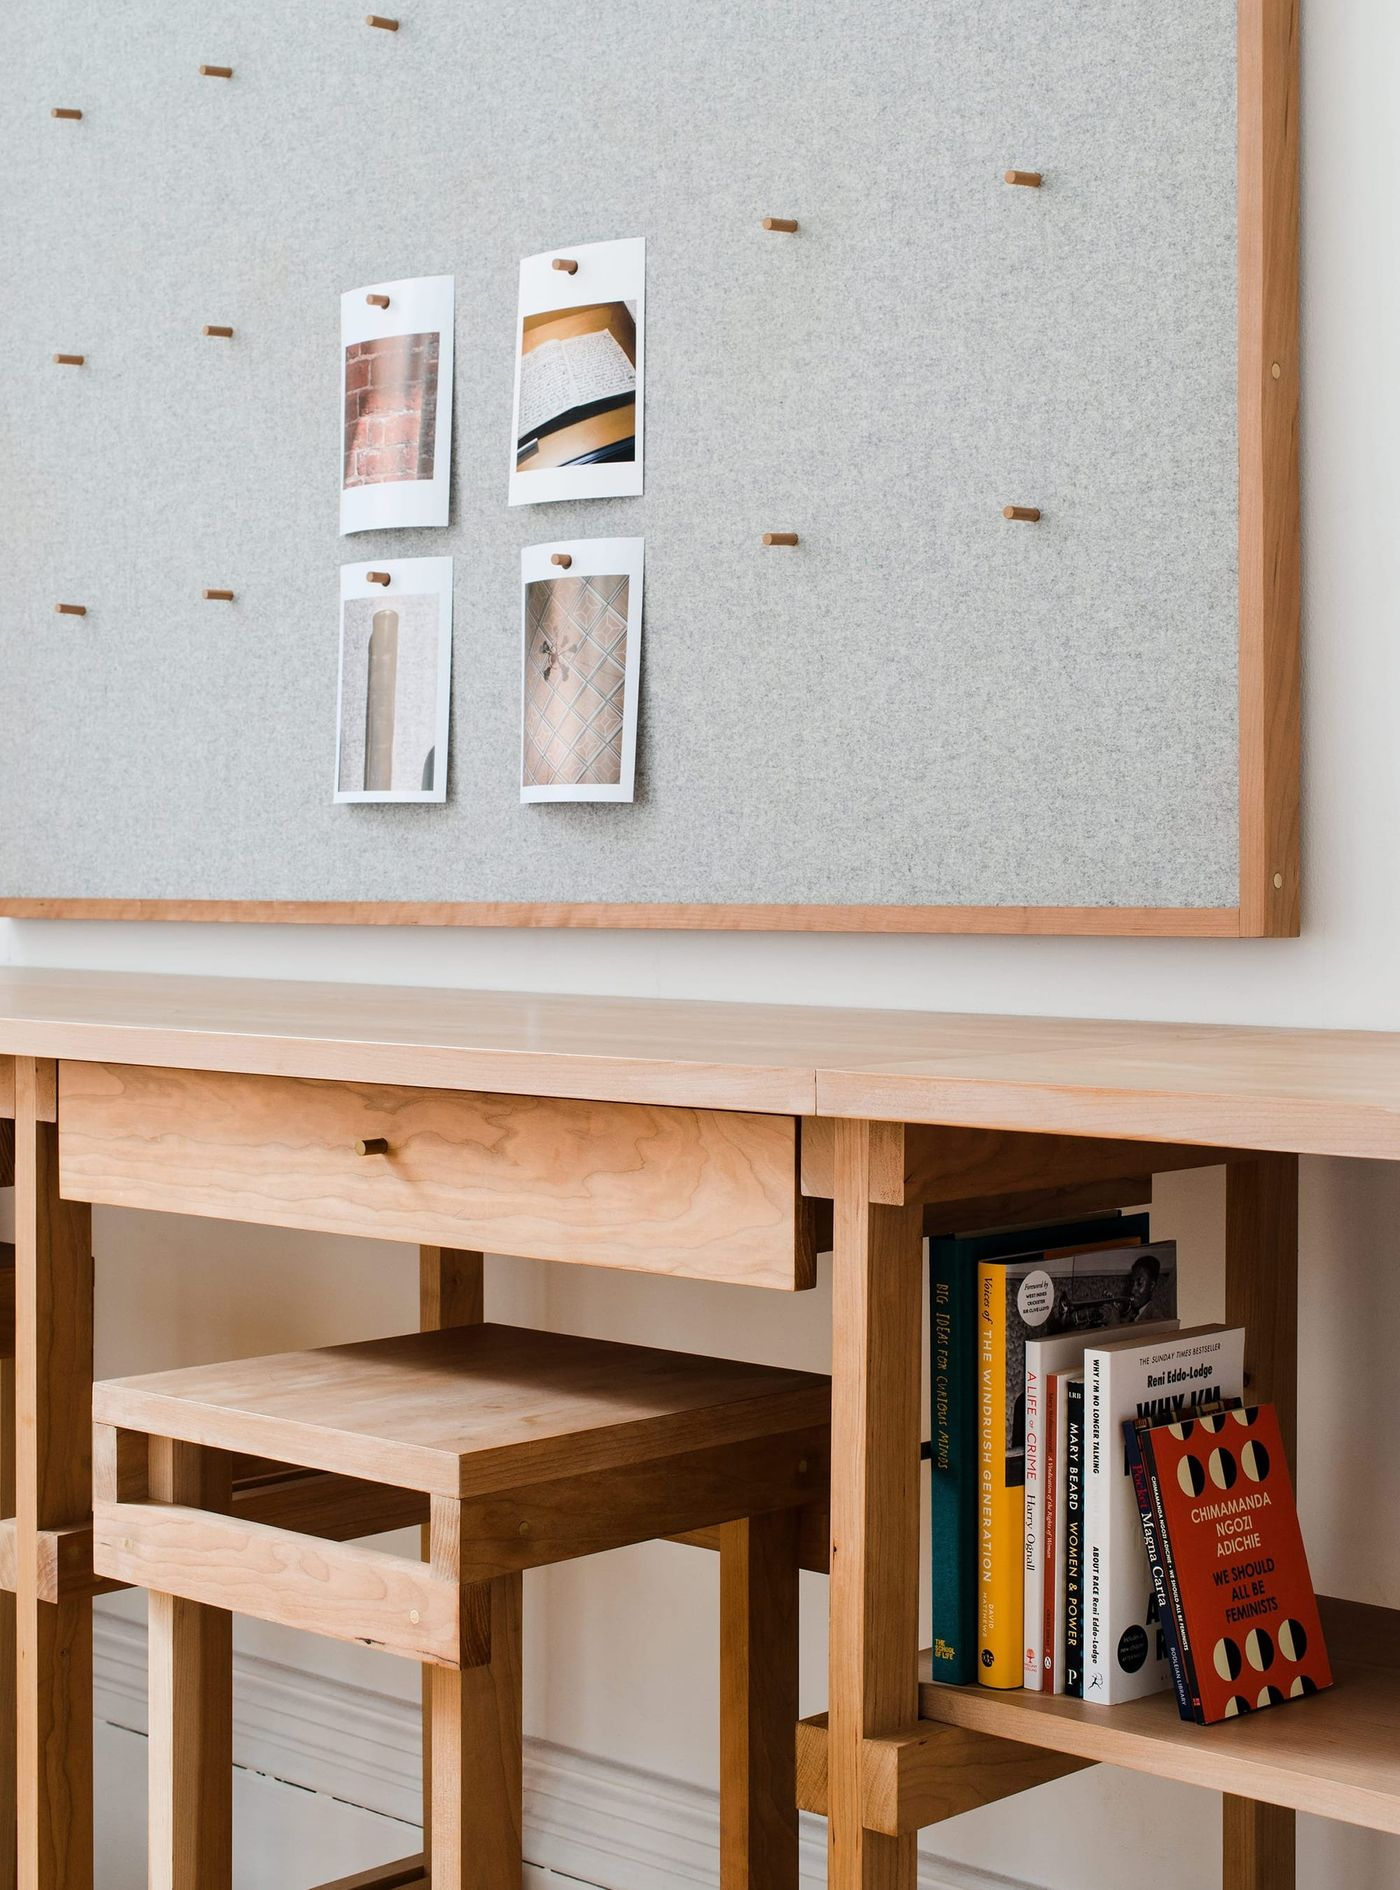 Detailed view of the bespoke solid cherry, felt and brass fitted joinery and furniture designed by From Works at the National Justice Museum in Nottingham.